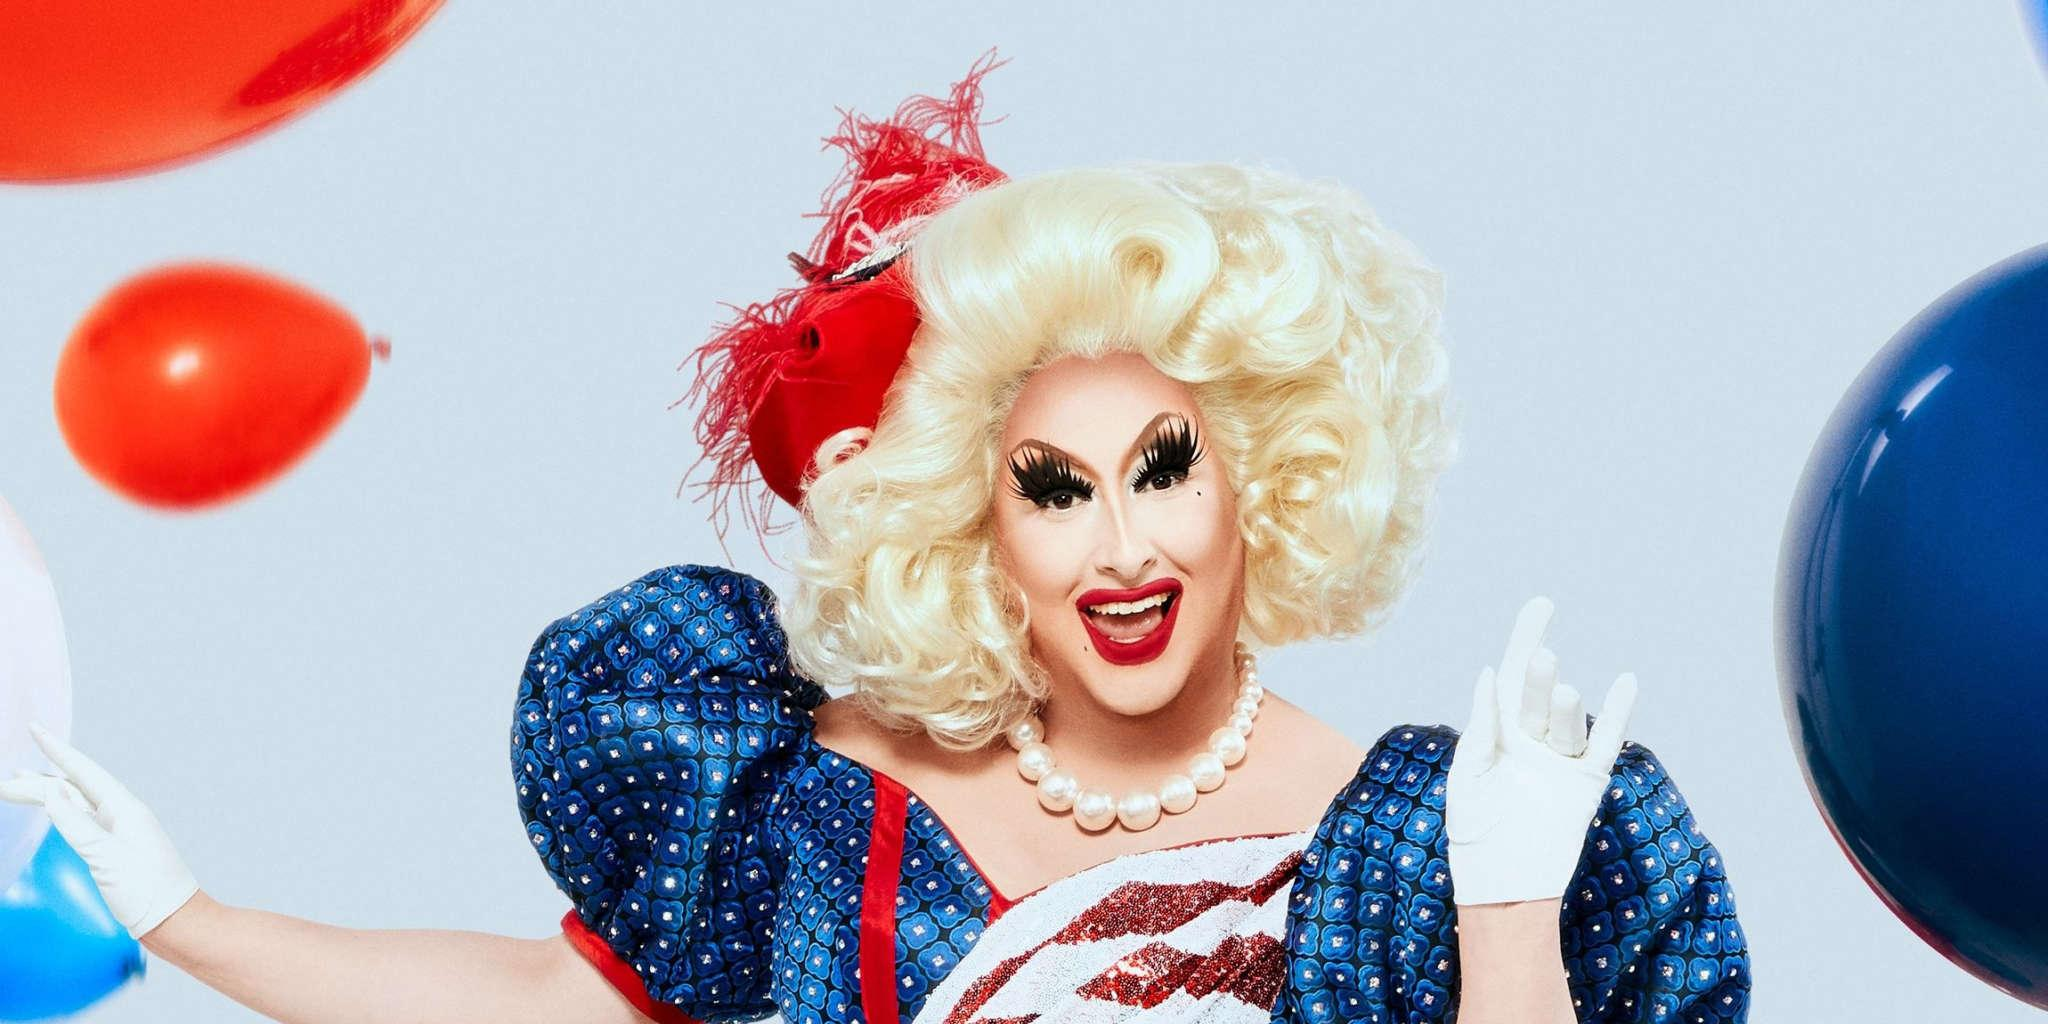 RuPaul's Drage Race Frontrunner Sherry Pie Disqualified After Being Exposed For Posing As Casting Director